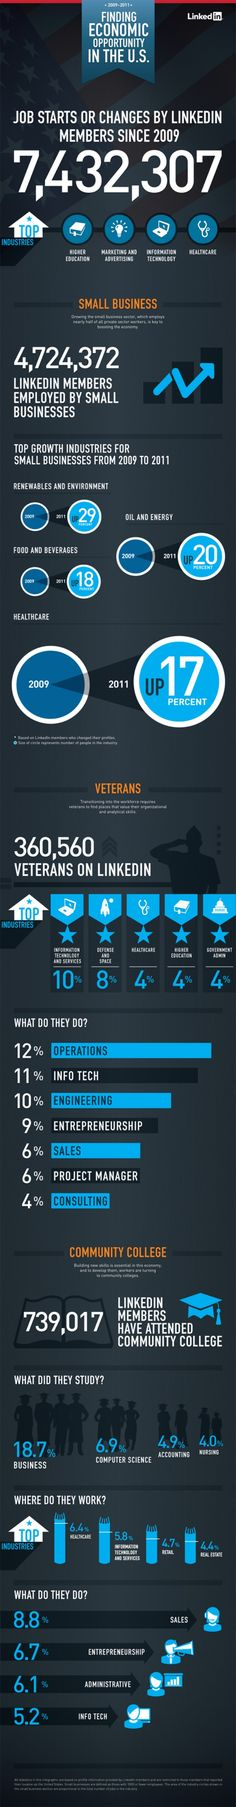 #LinkedIn. Who Uses It and What Do They Do?